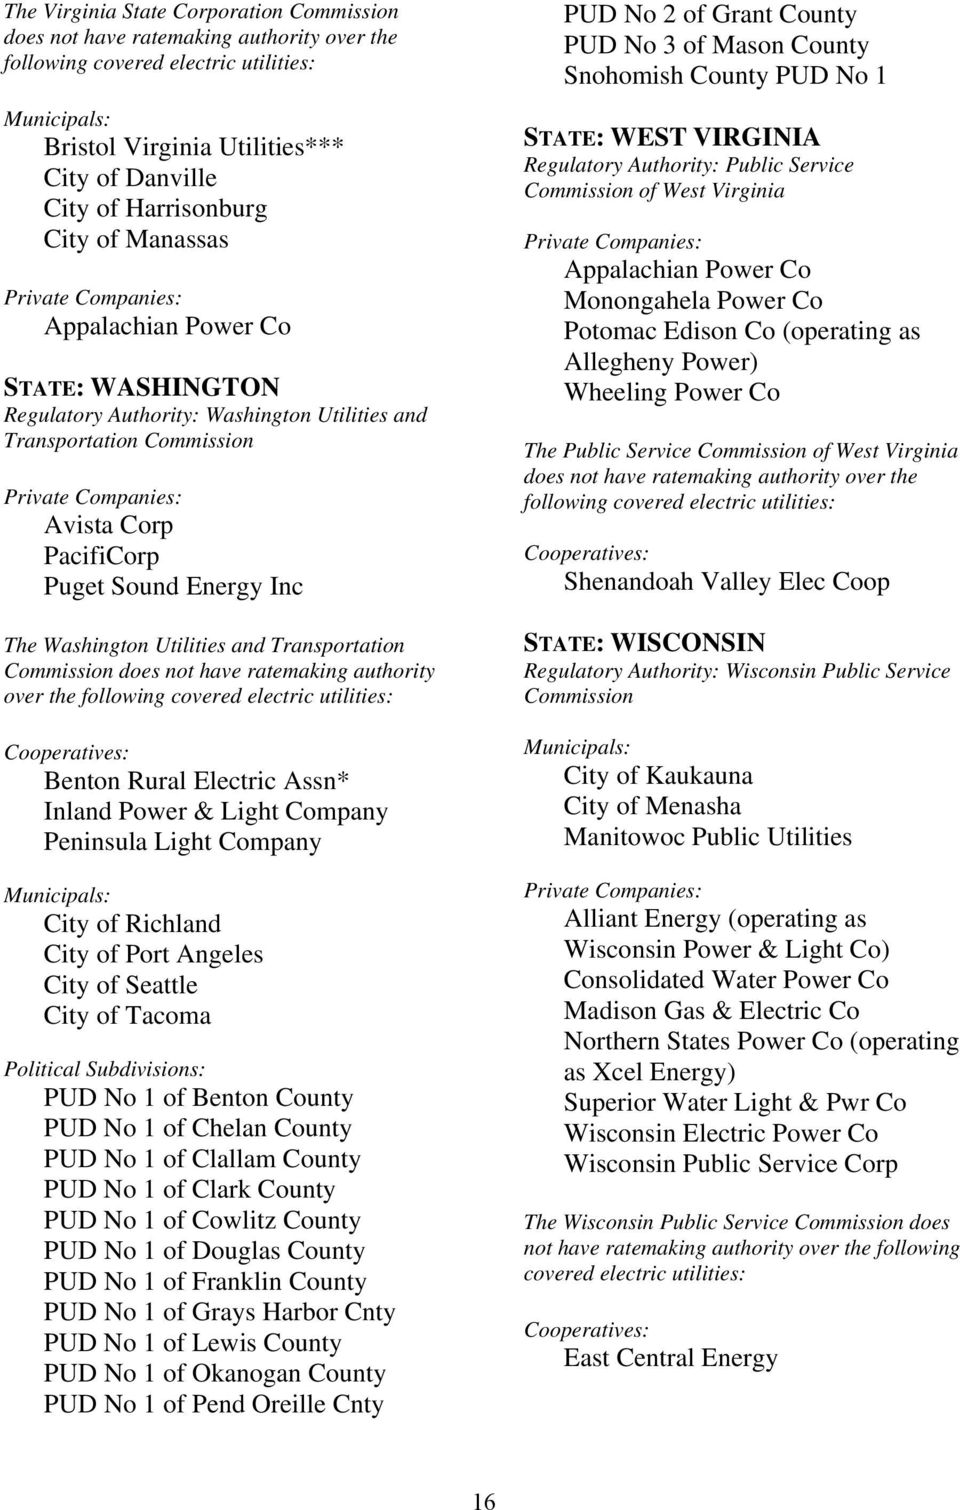 Assn* Inland Power & Light Company Peninsula Light Company City of Richland City of Port Angeles City of Seattle City of Tacoma Political Subdivisions: PUD No 1 of Benton County PUD No 1 of Chelan